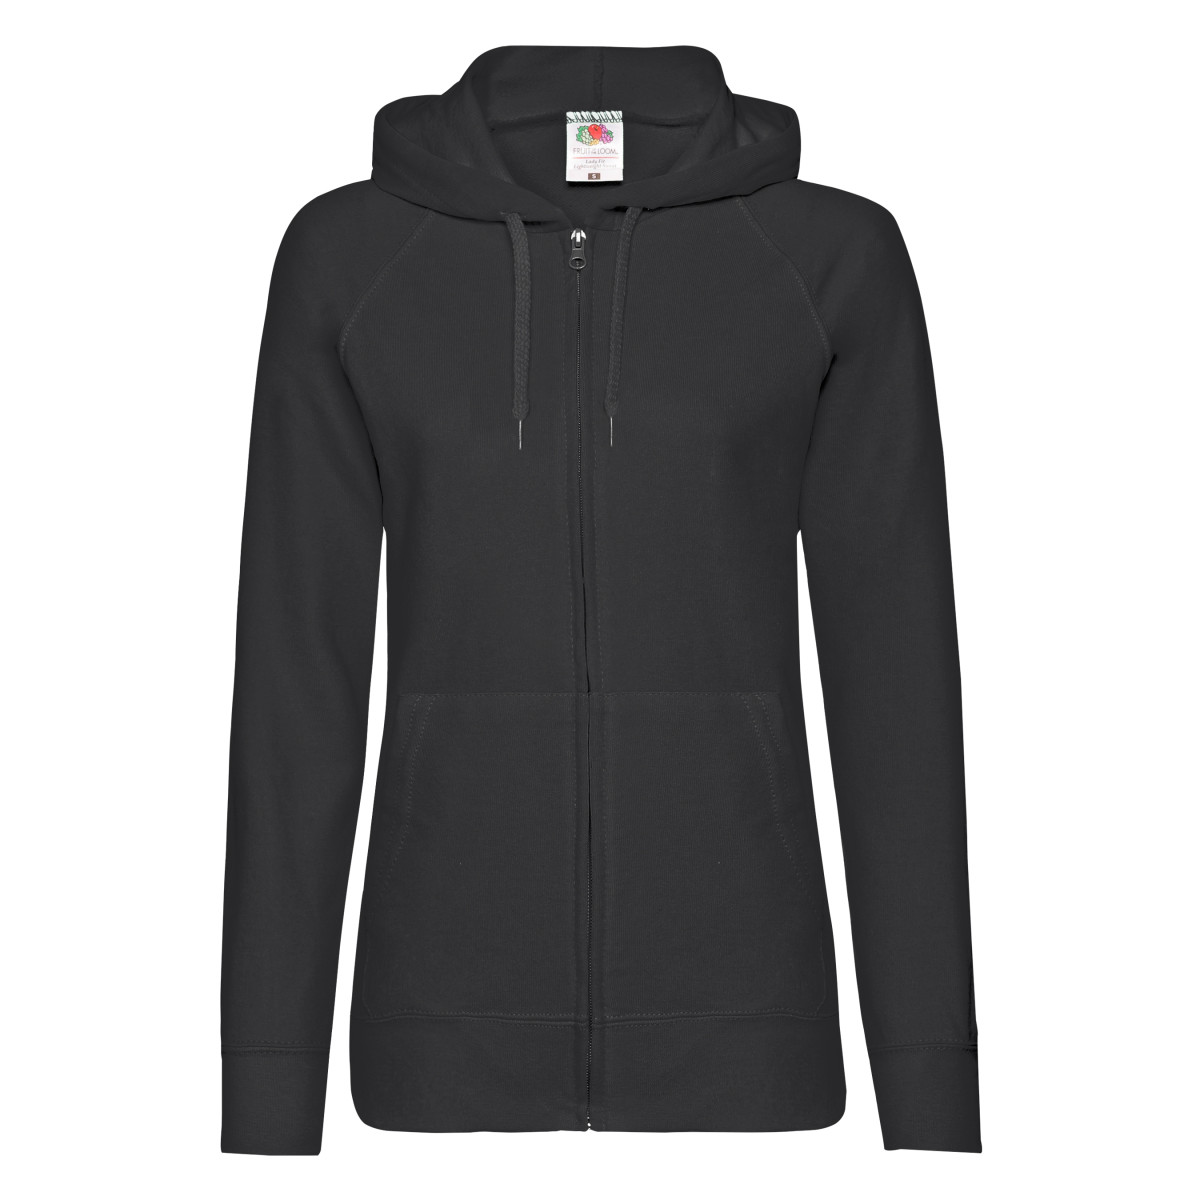 fruit of the loom ladies fitted lightweight hooded sweatshirts jacket zoodie ebay. Black Bedroom Furniture Sets. Home Design Ideas